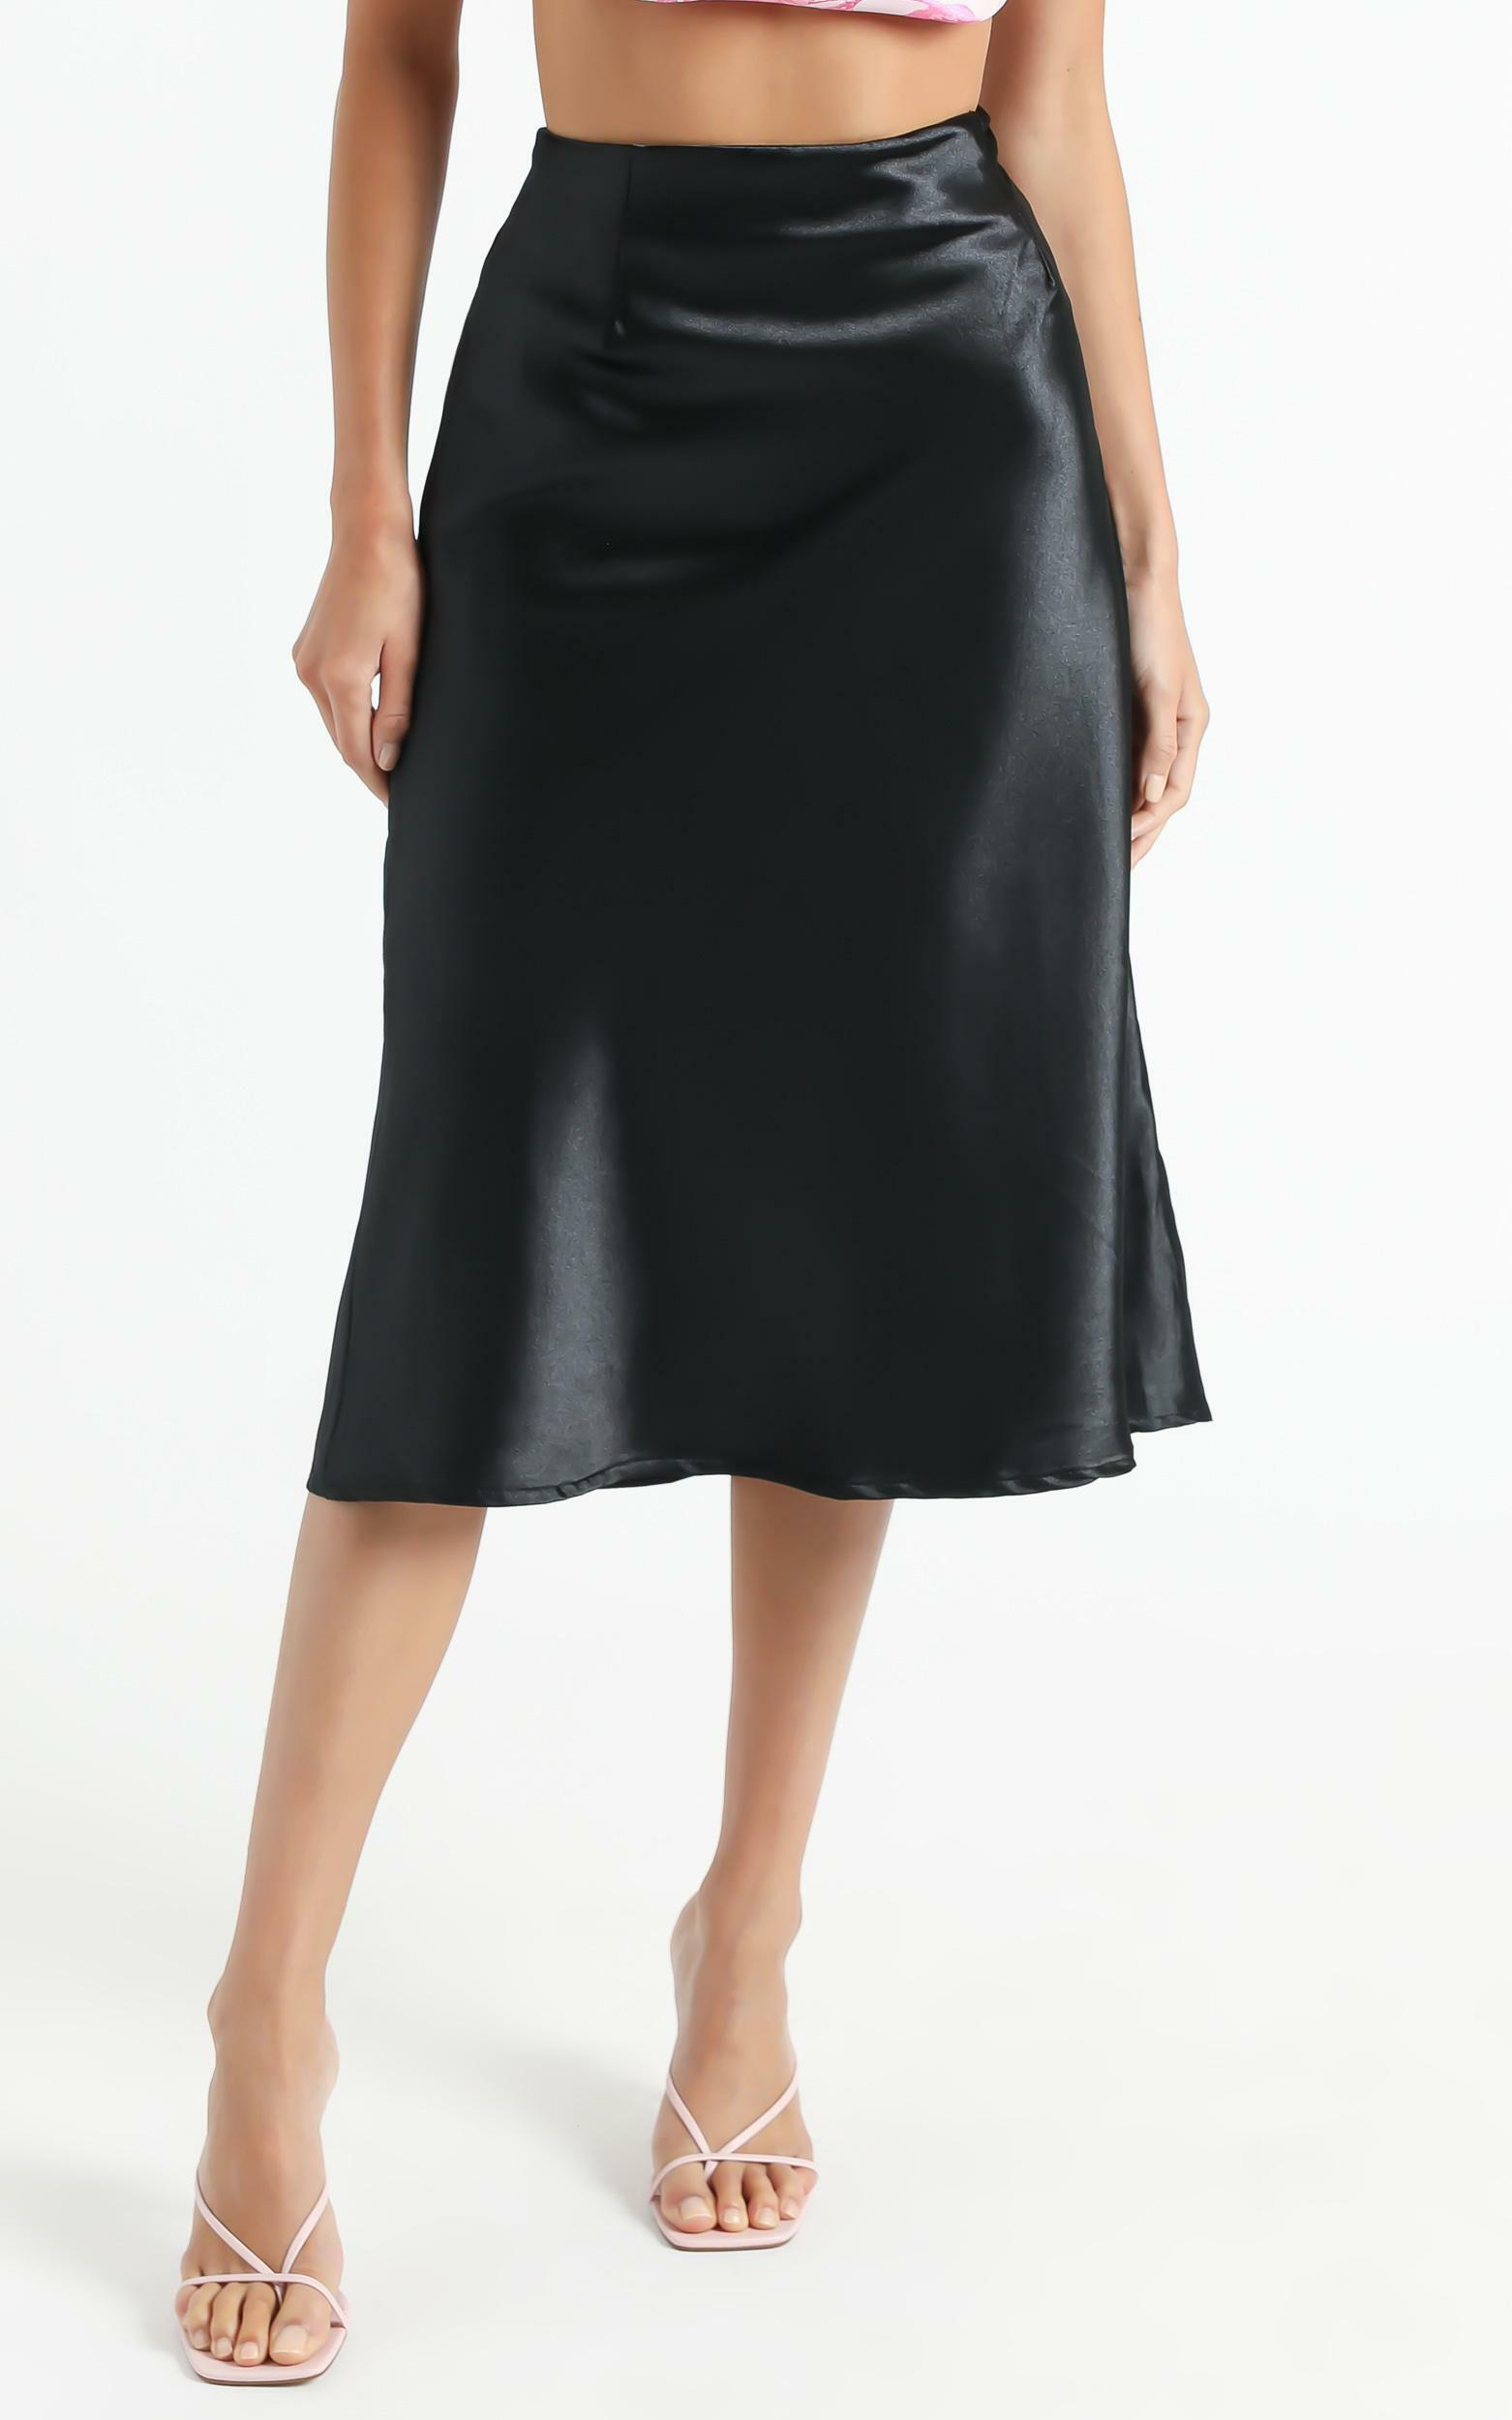 Creating Art Skirt in Black - 6 (XS), Black, hi-res image number null